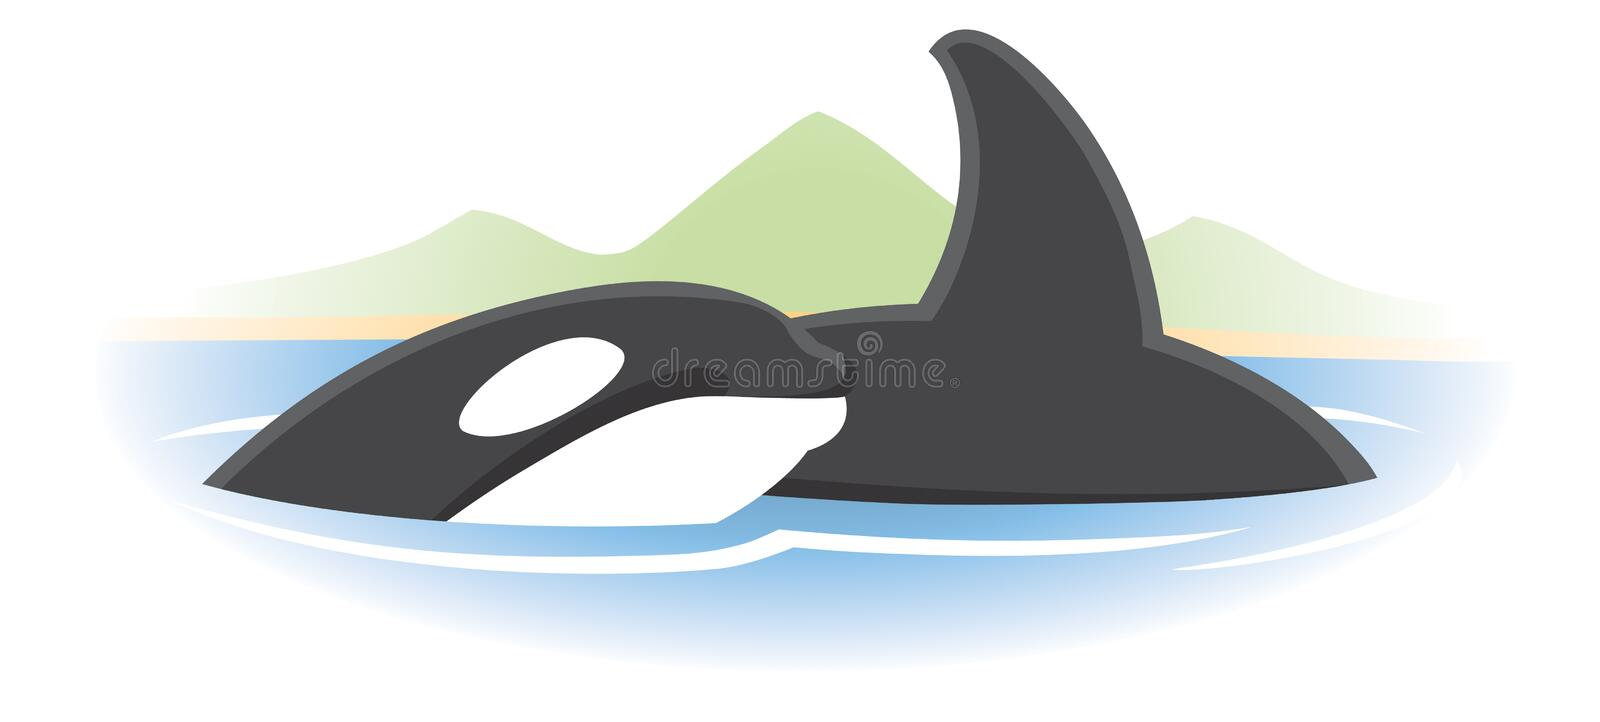 Orca Whale Logo Stock Photos